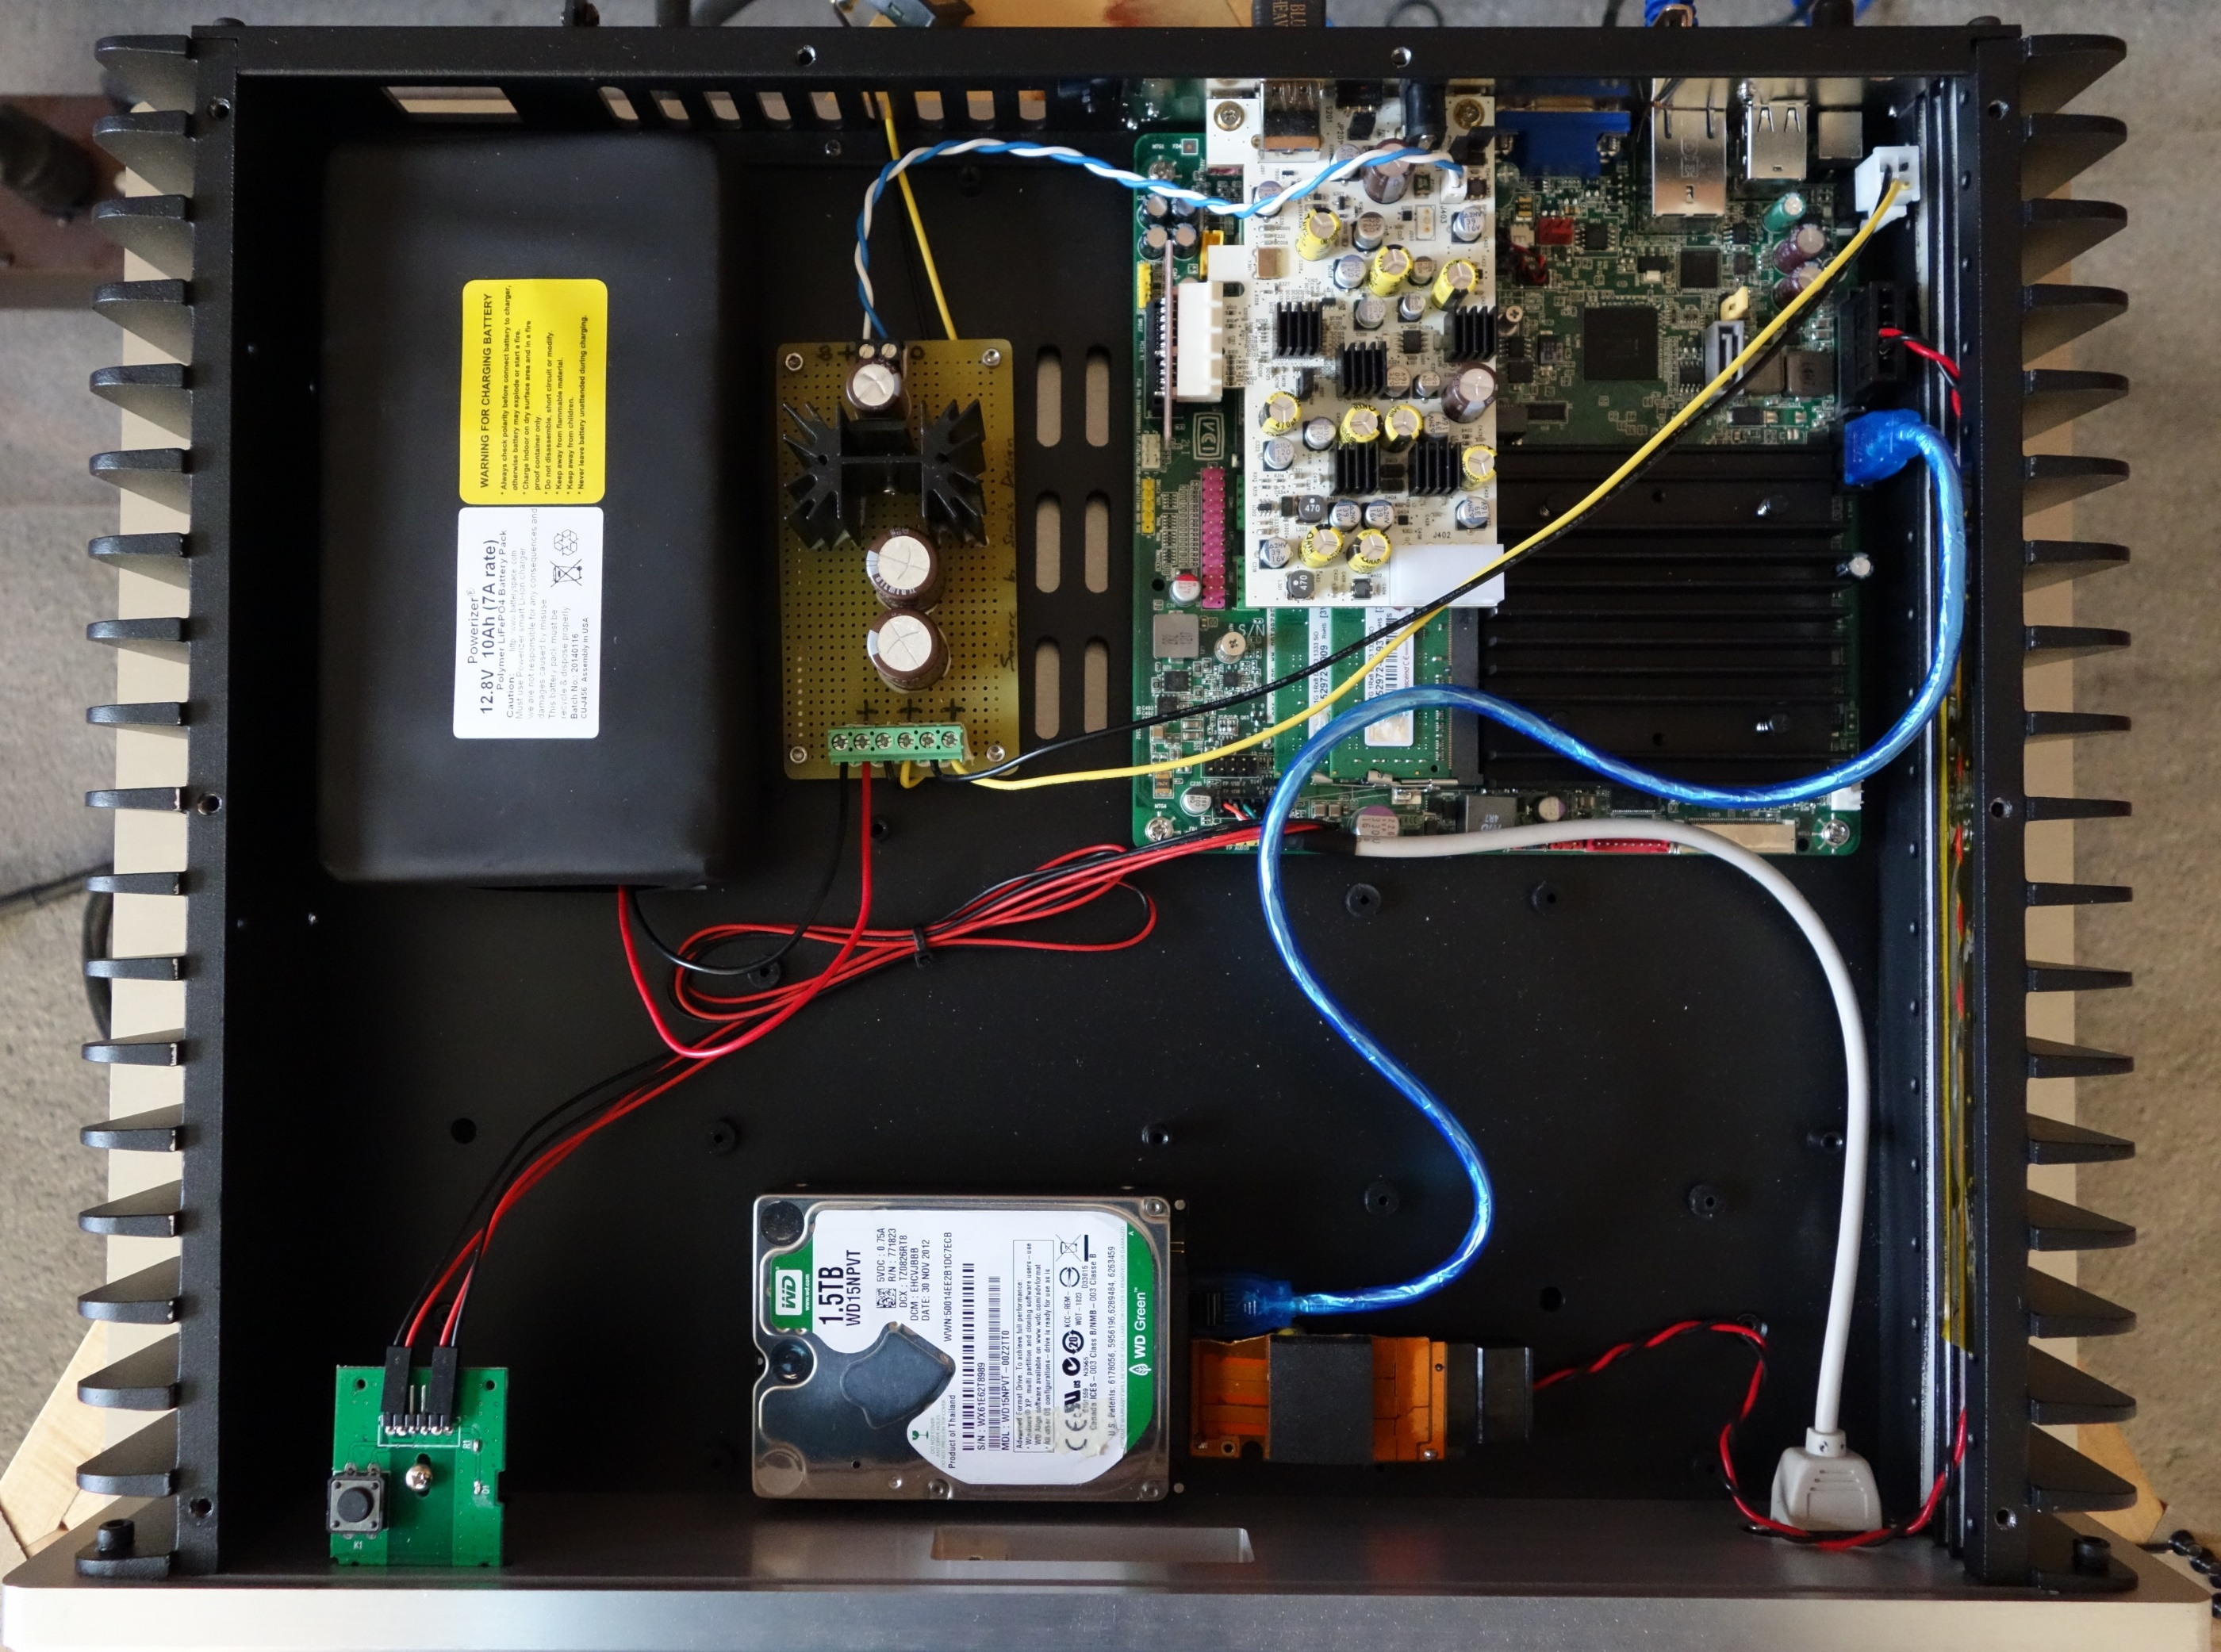 New Lifepo4 Powered Server Music Servers Computer Audiophile Dual Super Cap Charging Circuit From 12v With Balance Voltage Well Battery Power Is For Real Originally I Had This Built In A Configuration Which Would Allow An Internal Supply Hate